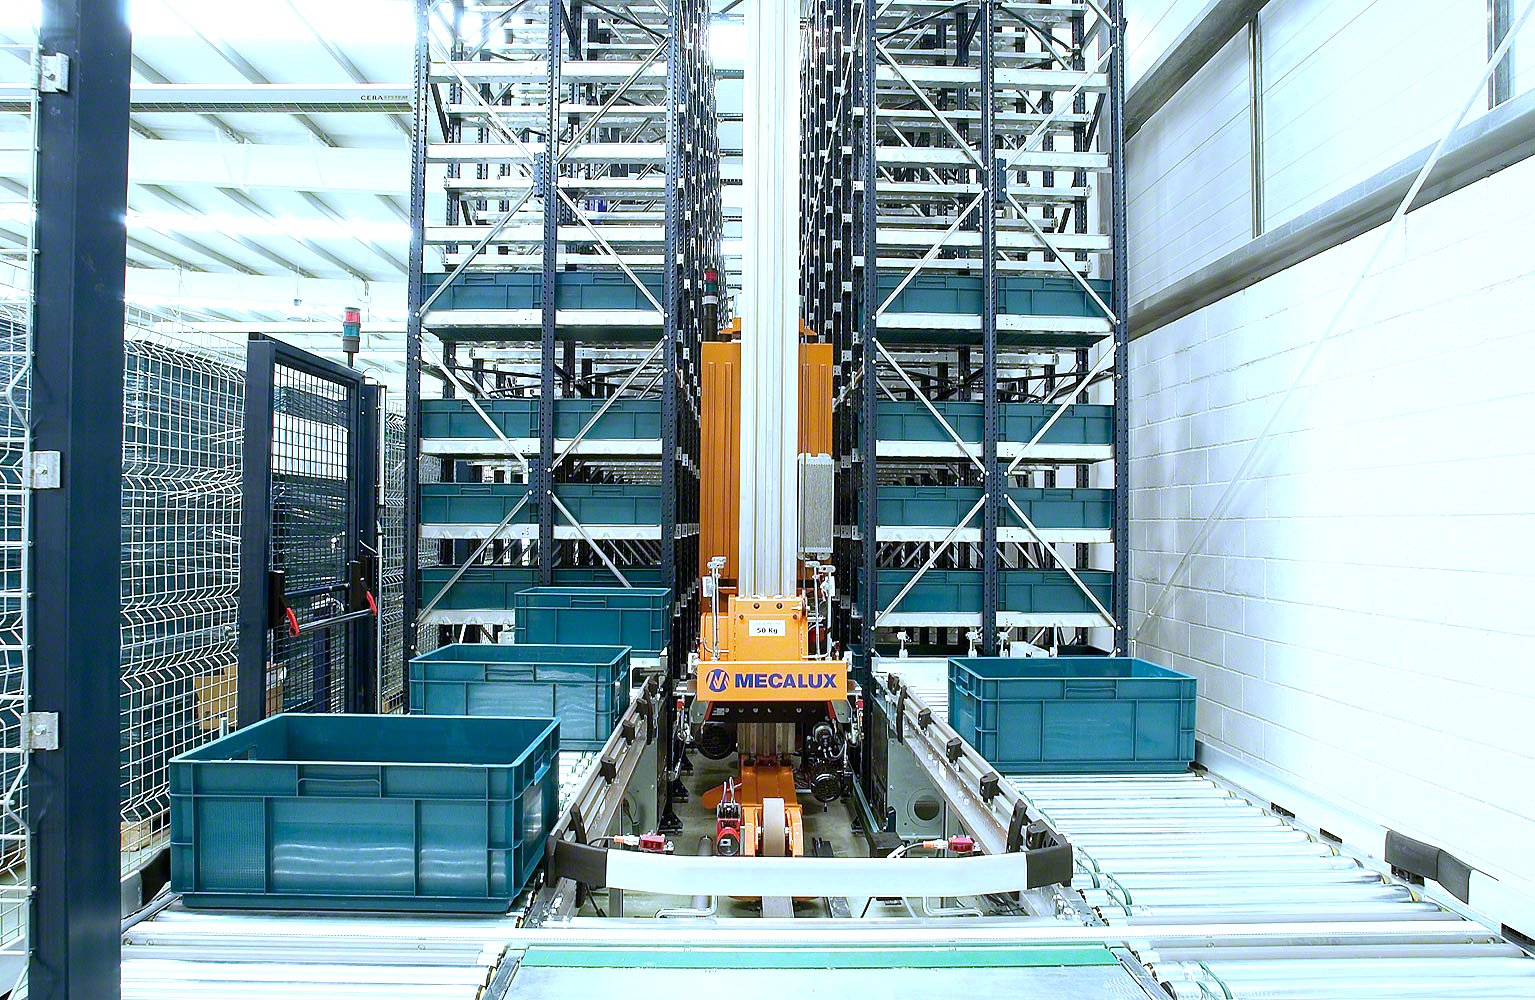 Mecalux stacker crane retrieving boxes for an automated storage and retrieval system ASRS